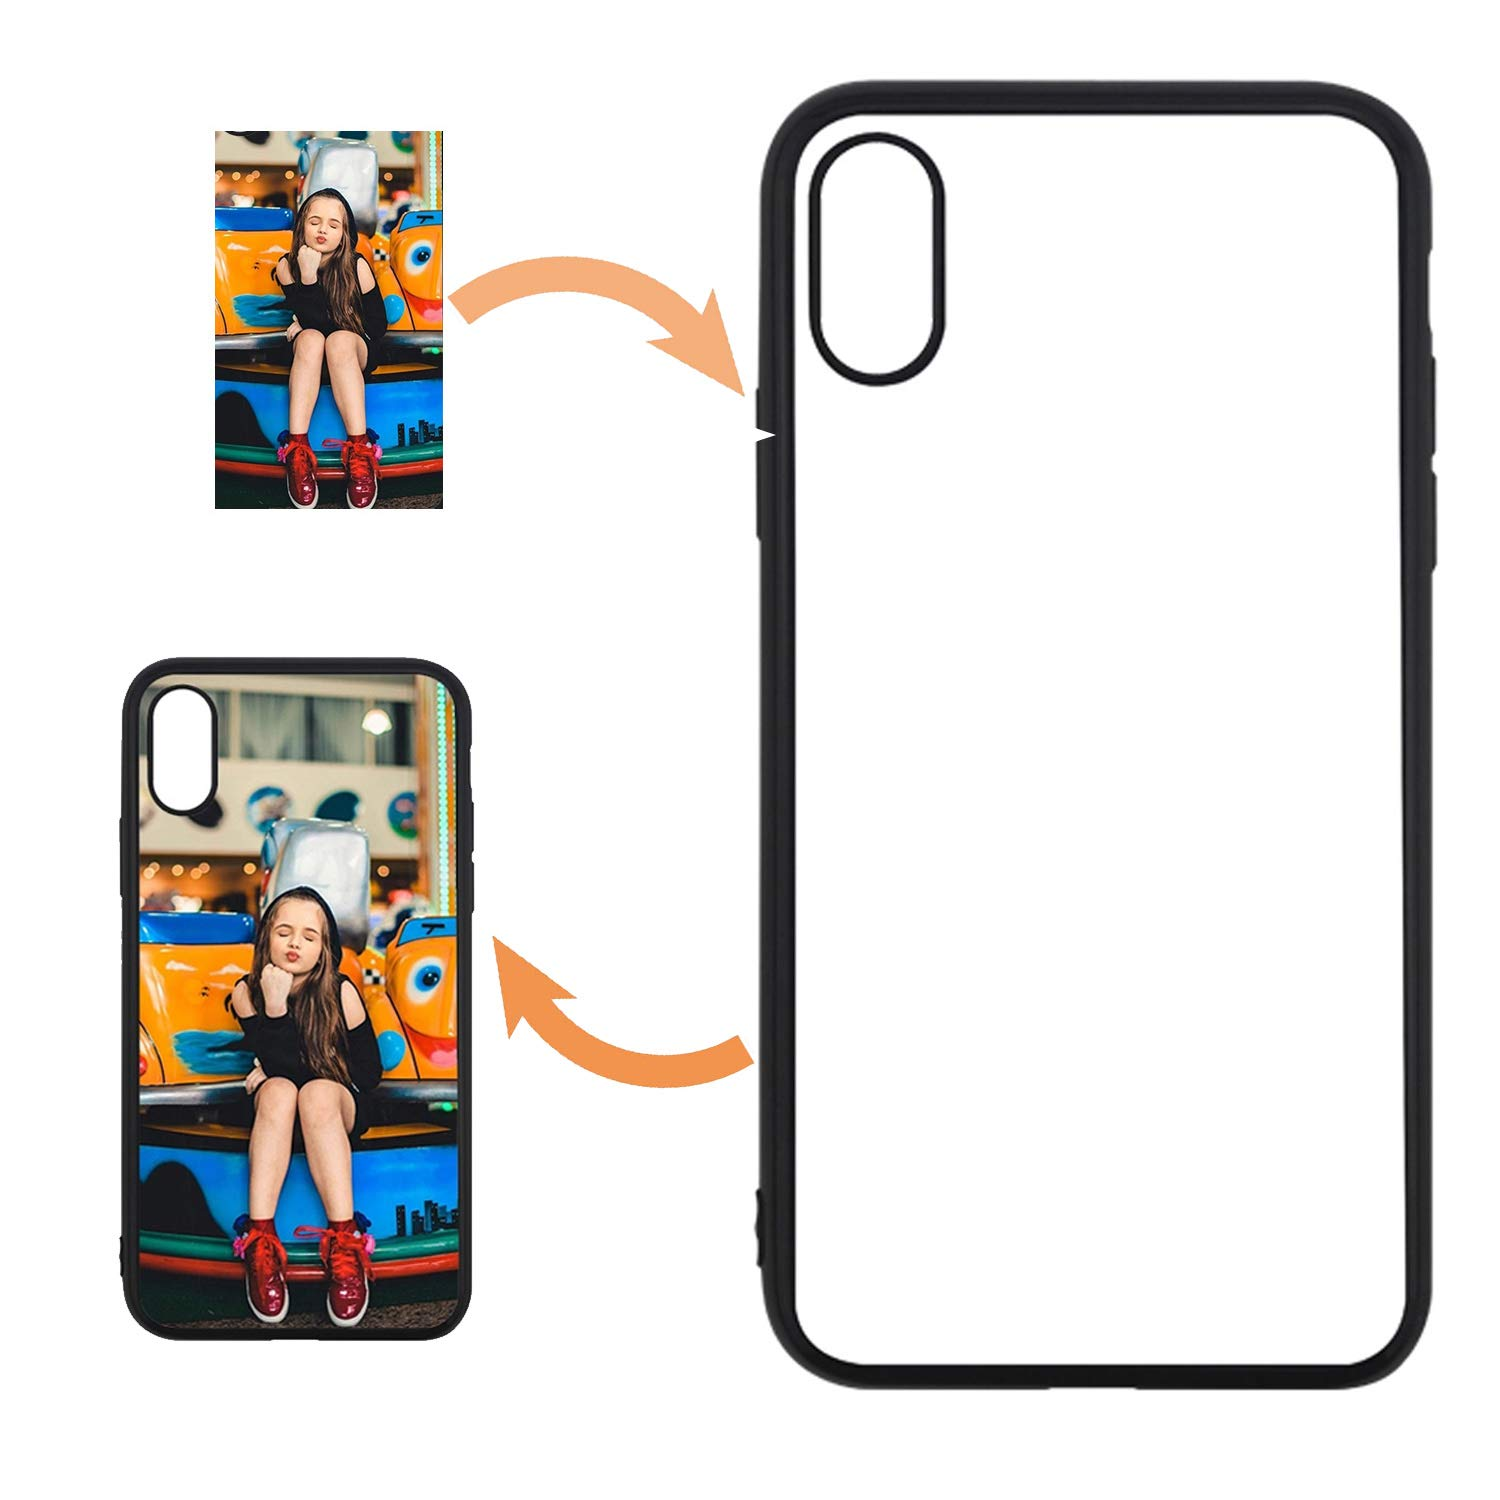 JUSTRY 10PCS Sublimation Blanks Phone Case Cases Anti-Scratch Covers Compatible with Apple iPhone Xs Max 6.5 Inch.Sublimation Blank Printable Phone Case for DIY Soft Rubber Polish DIY Your Phone Case